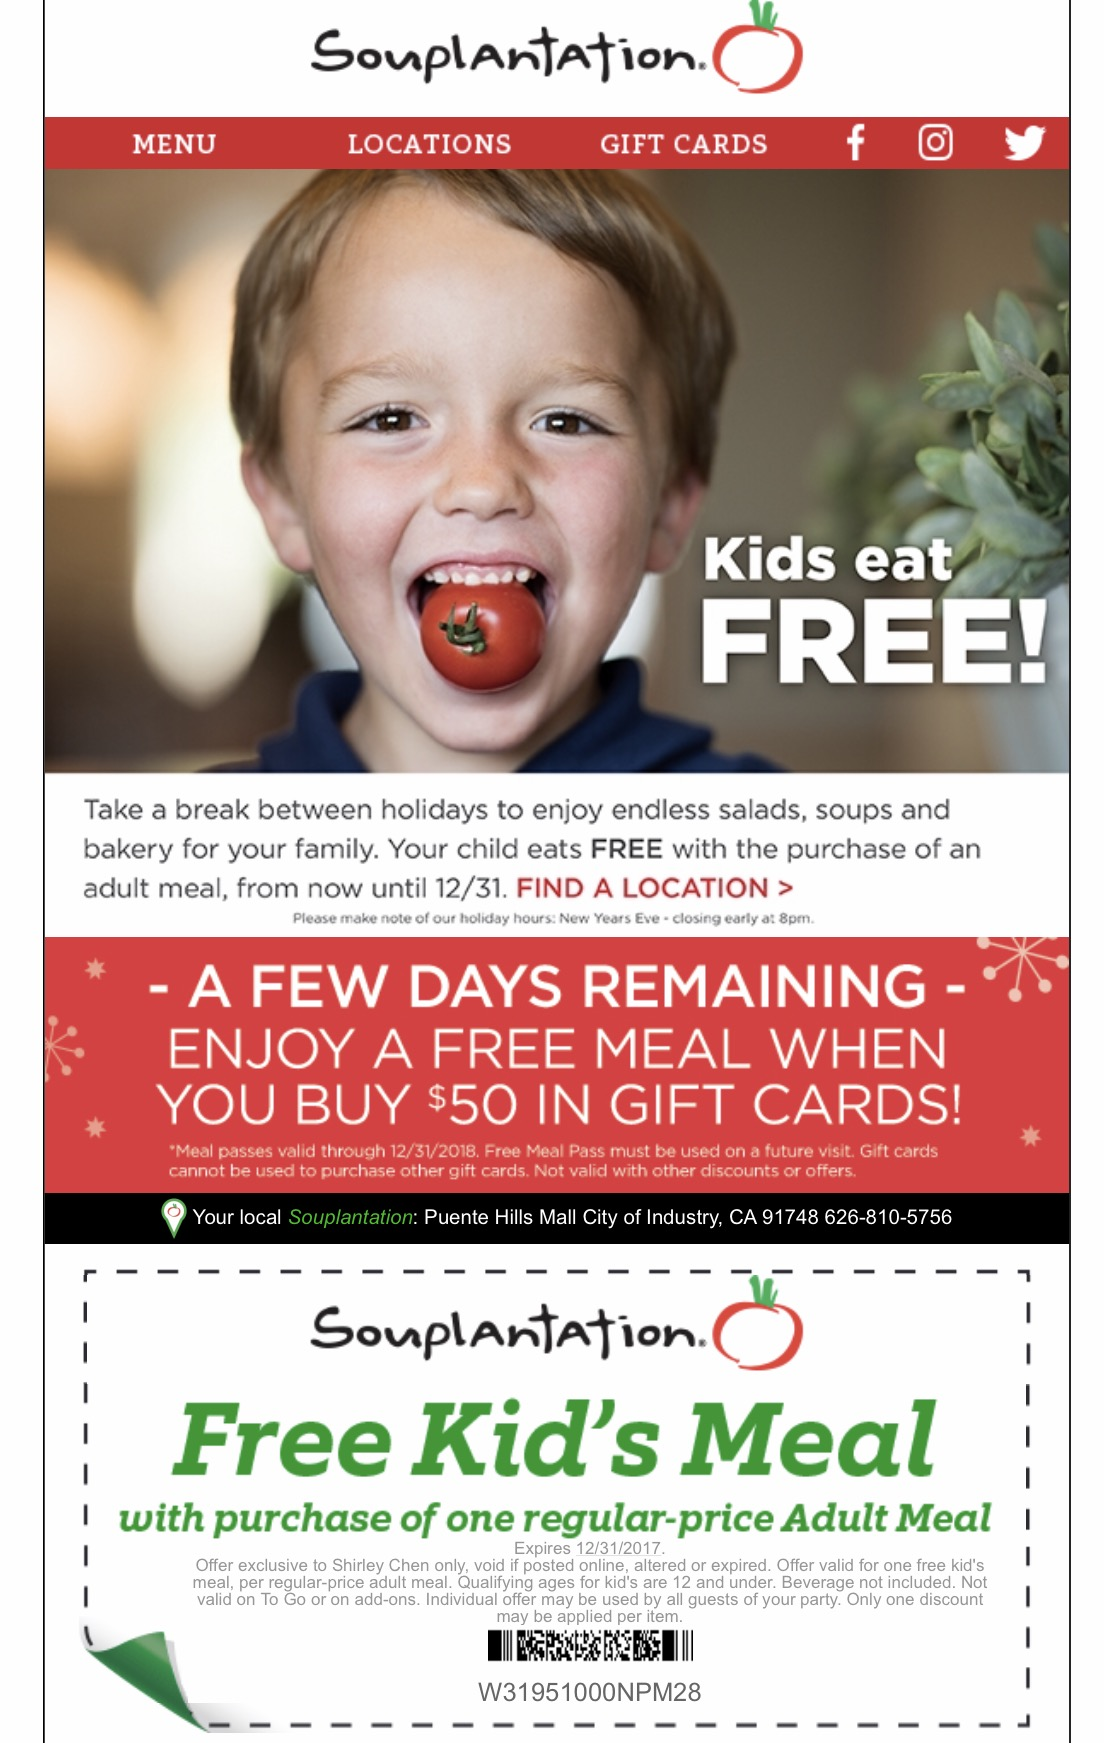 When All Kids Eat For Free >> Souplantation Kids Eat Free Plus Free Meals Coupons